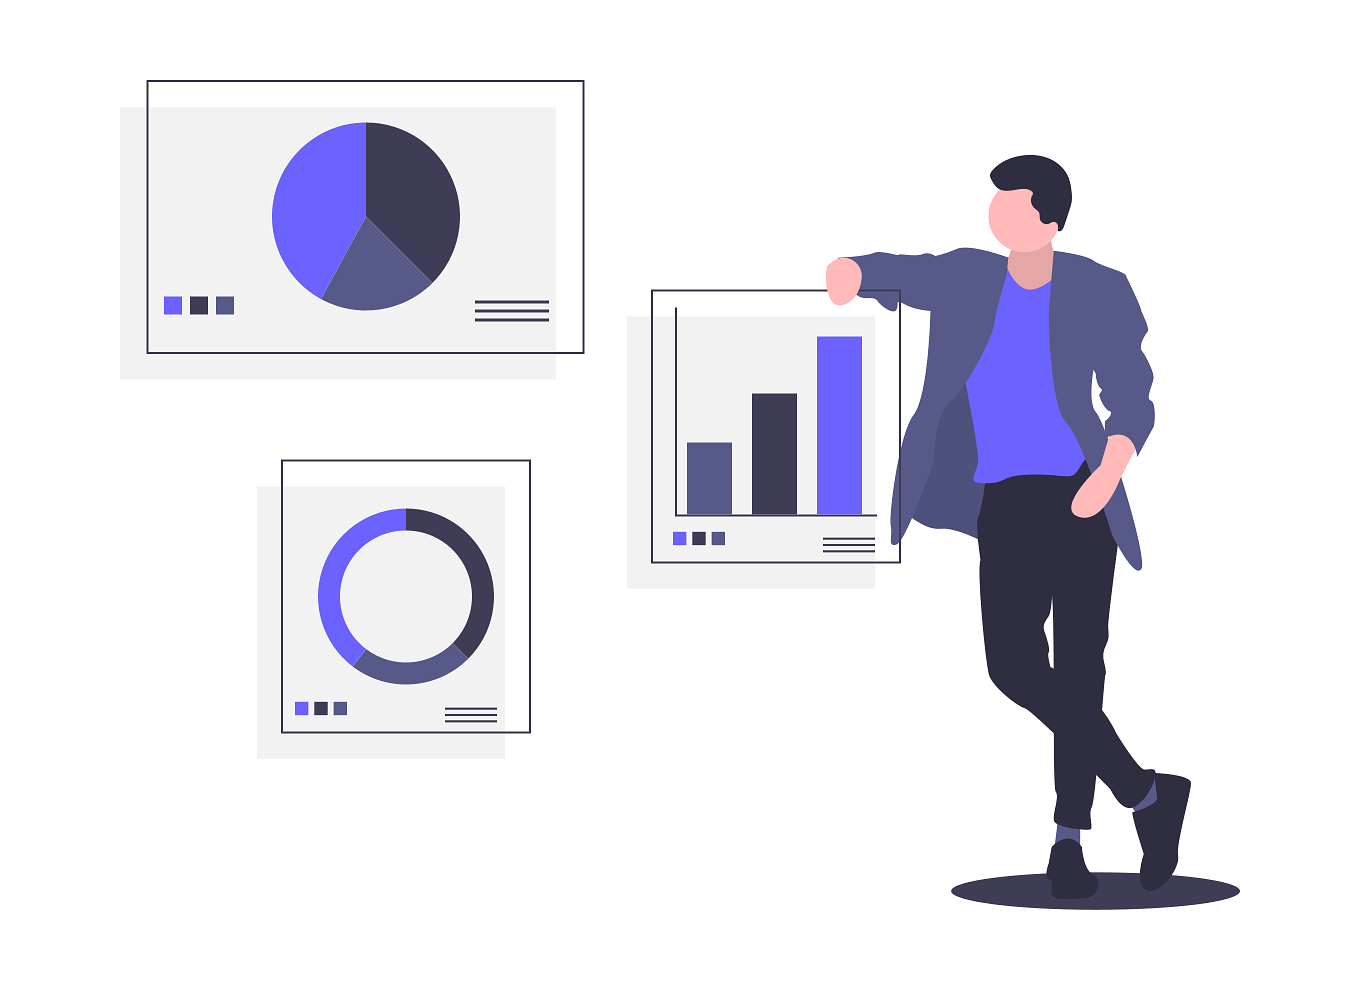 Reporting - Our business intelligence reporting package gives you enterprise-level reports on all data within the system. This can be manipulated and exported to allow for sharing and further analysis.